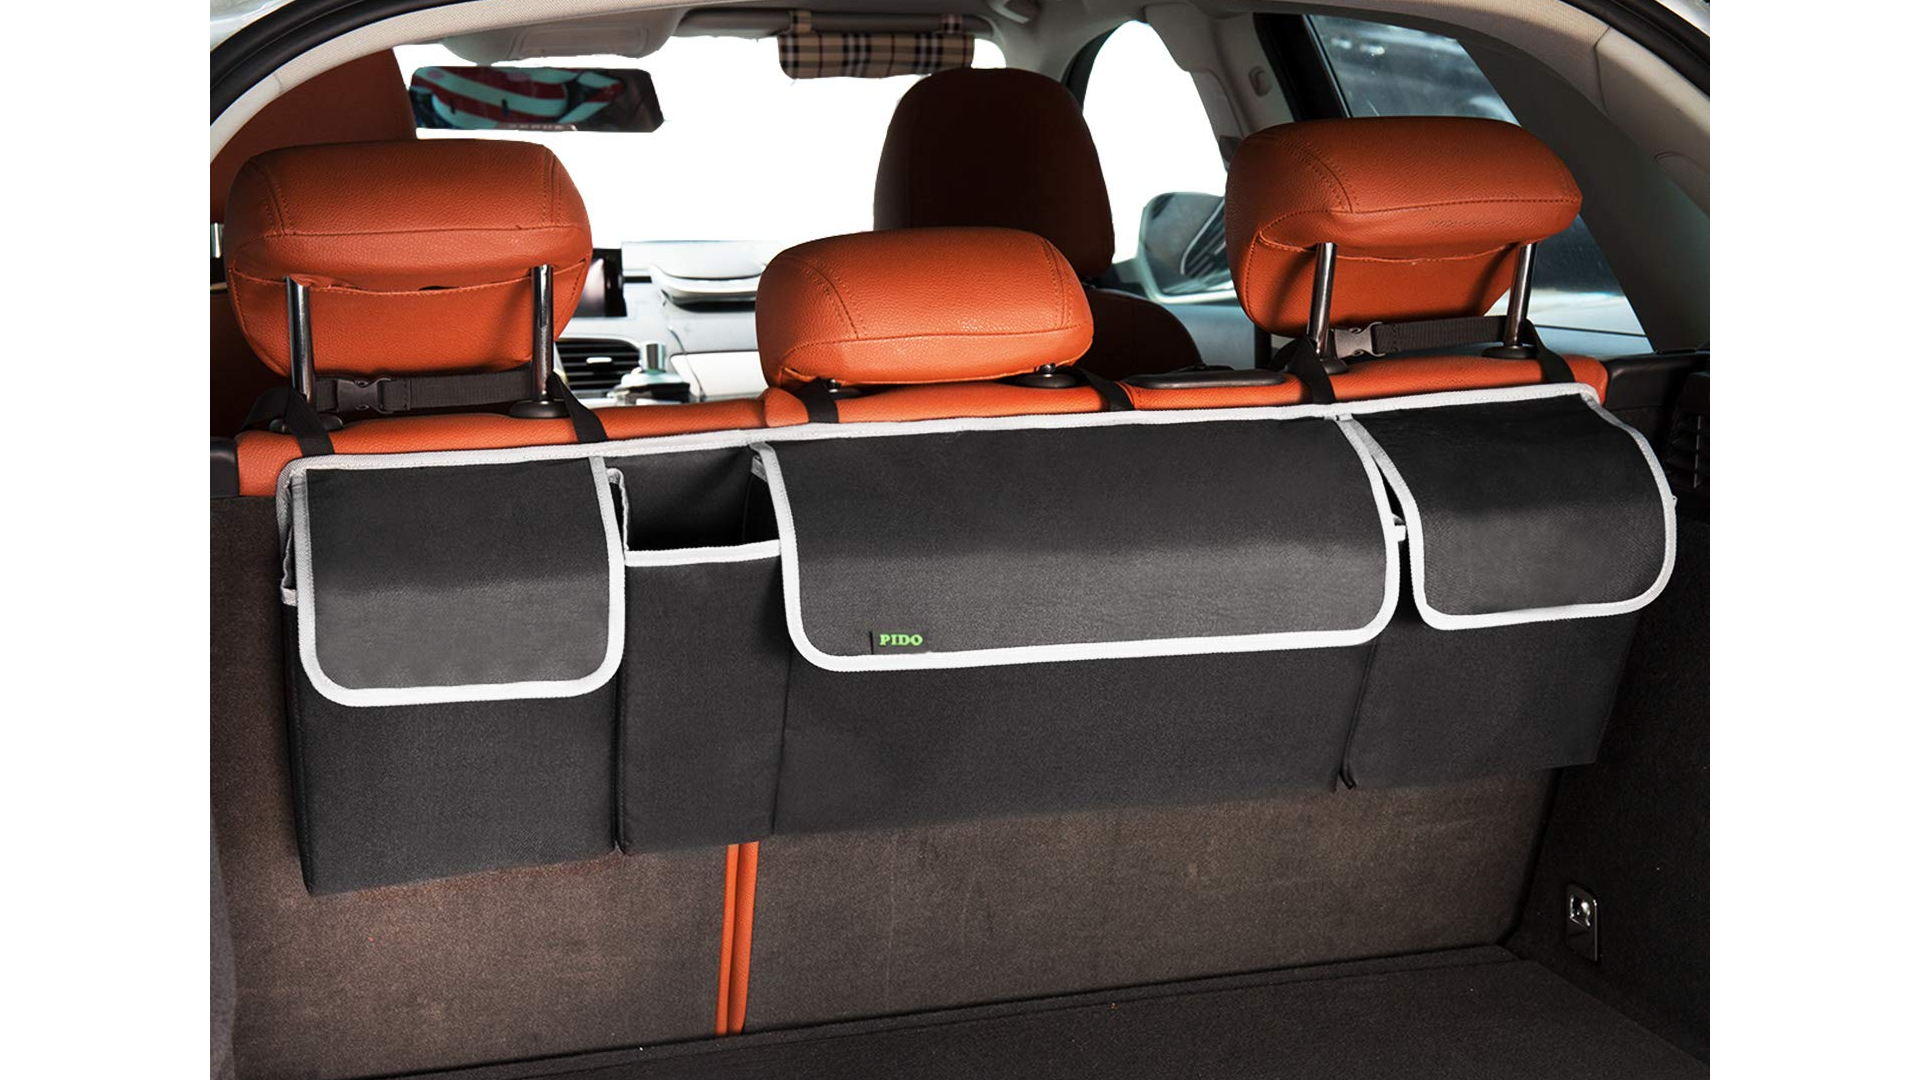 The PIDO hanging organizer strapped to the back of an SUV bench.